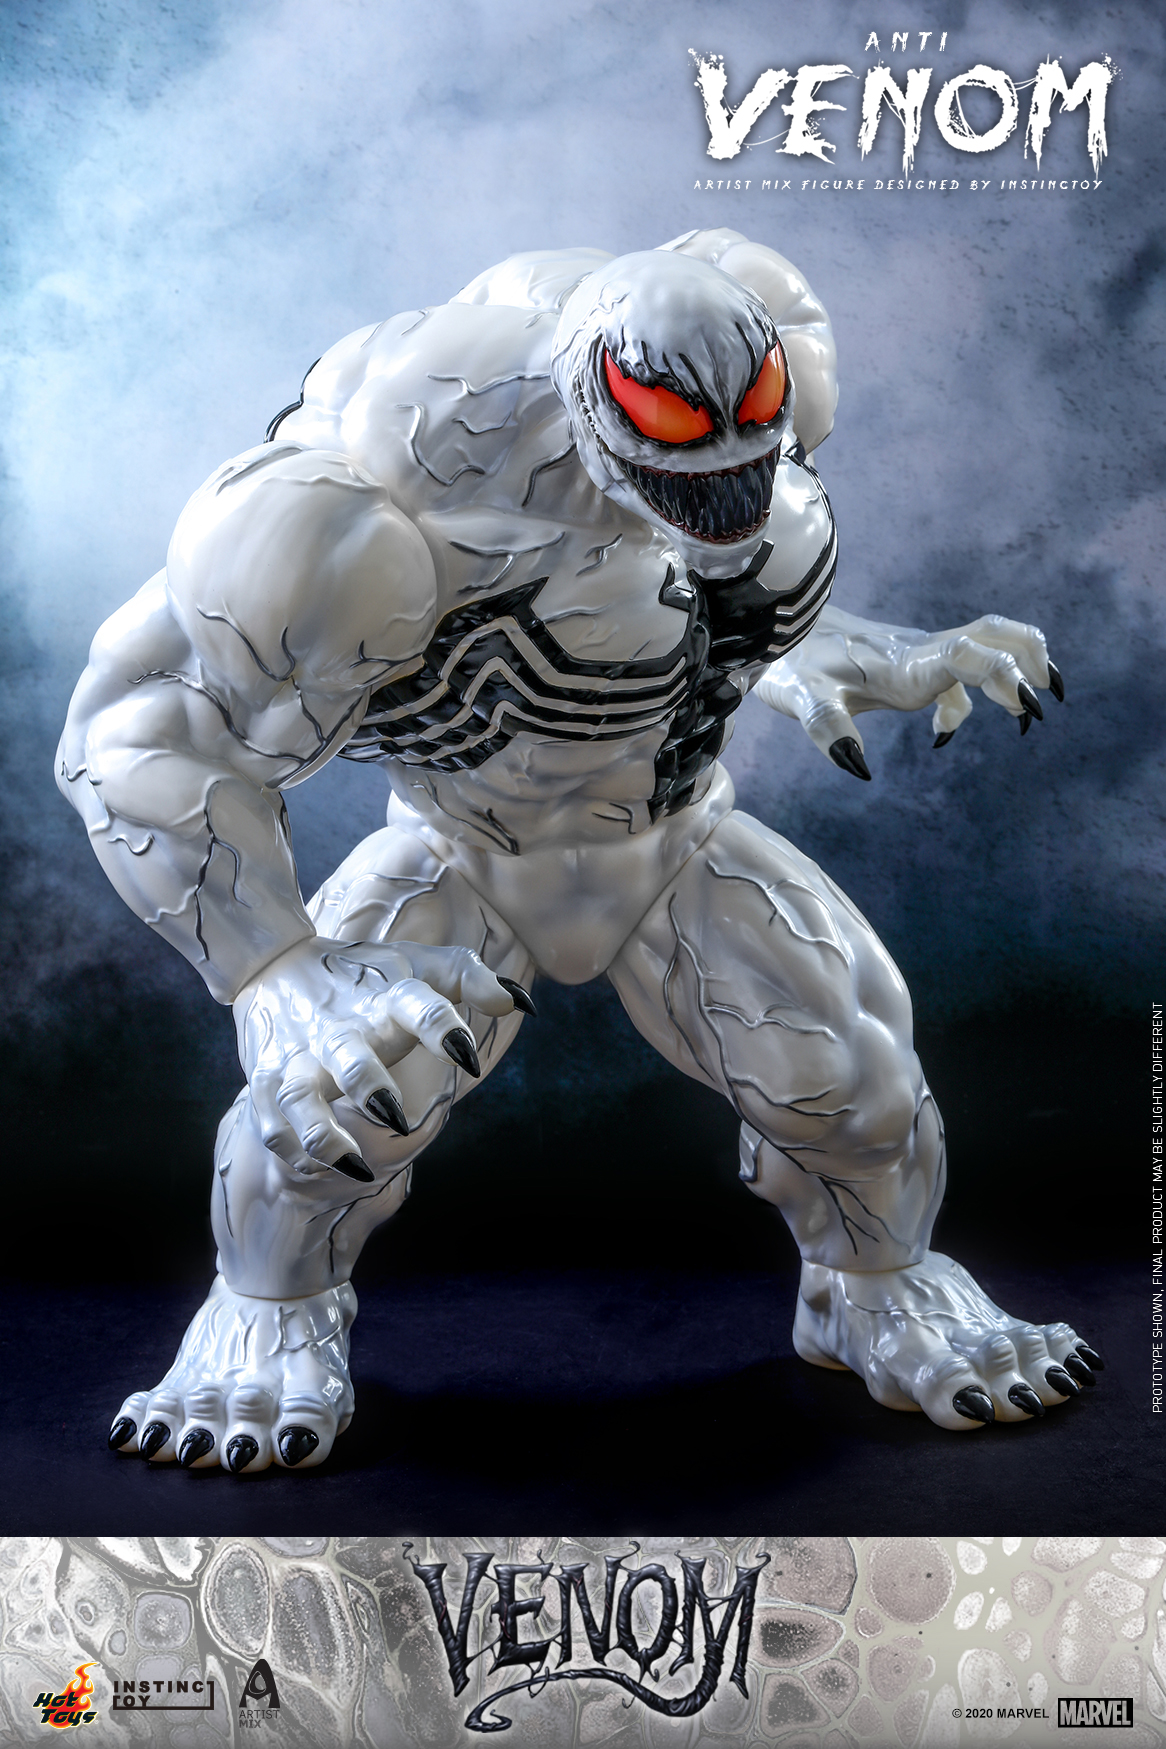 Hot Toys - Venom (Comic) - Anti Venom Artist Mix Designed by INSTINCTOY_PR1